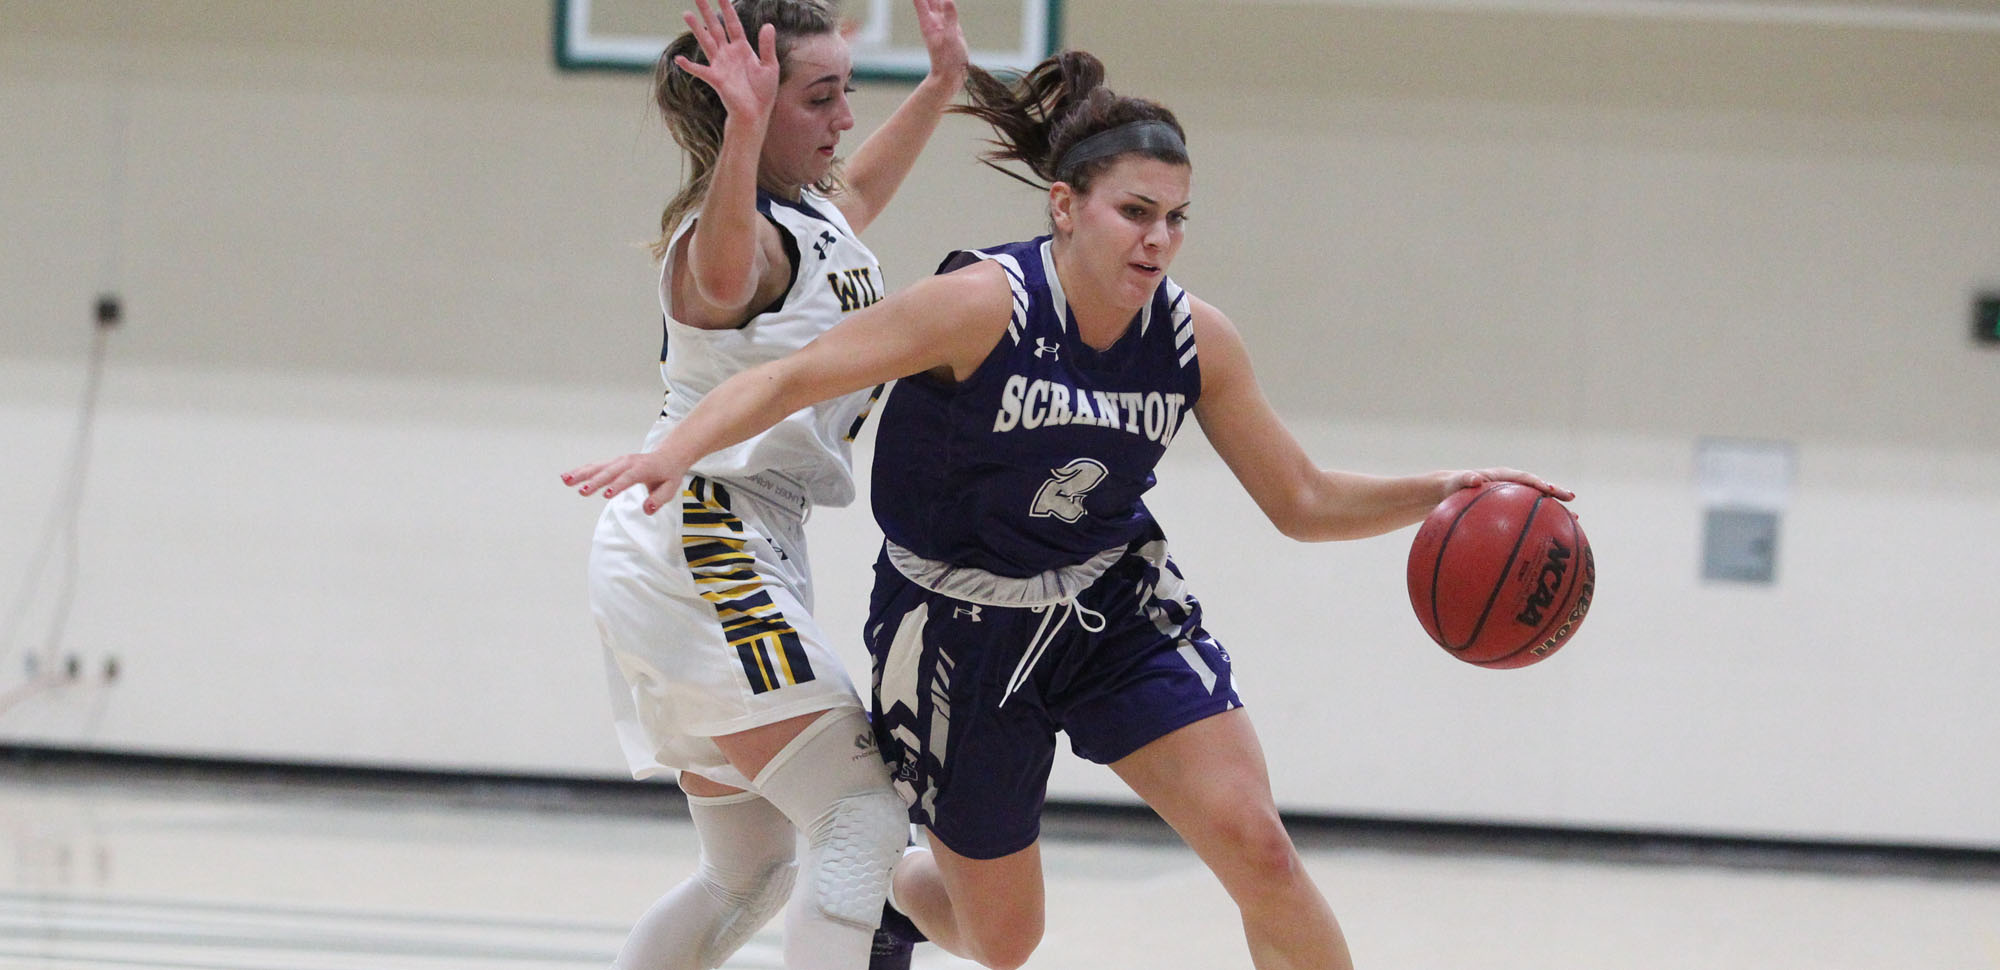 Junior guard Emily Sheehan scored five straight points early in the fourth quarter to give Scranton a lead they would not give up in a 63-58 win over DeSales on Monday night.